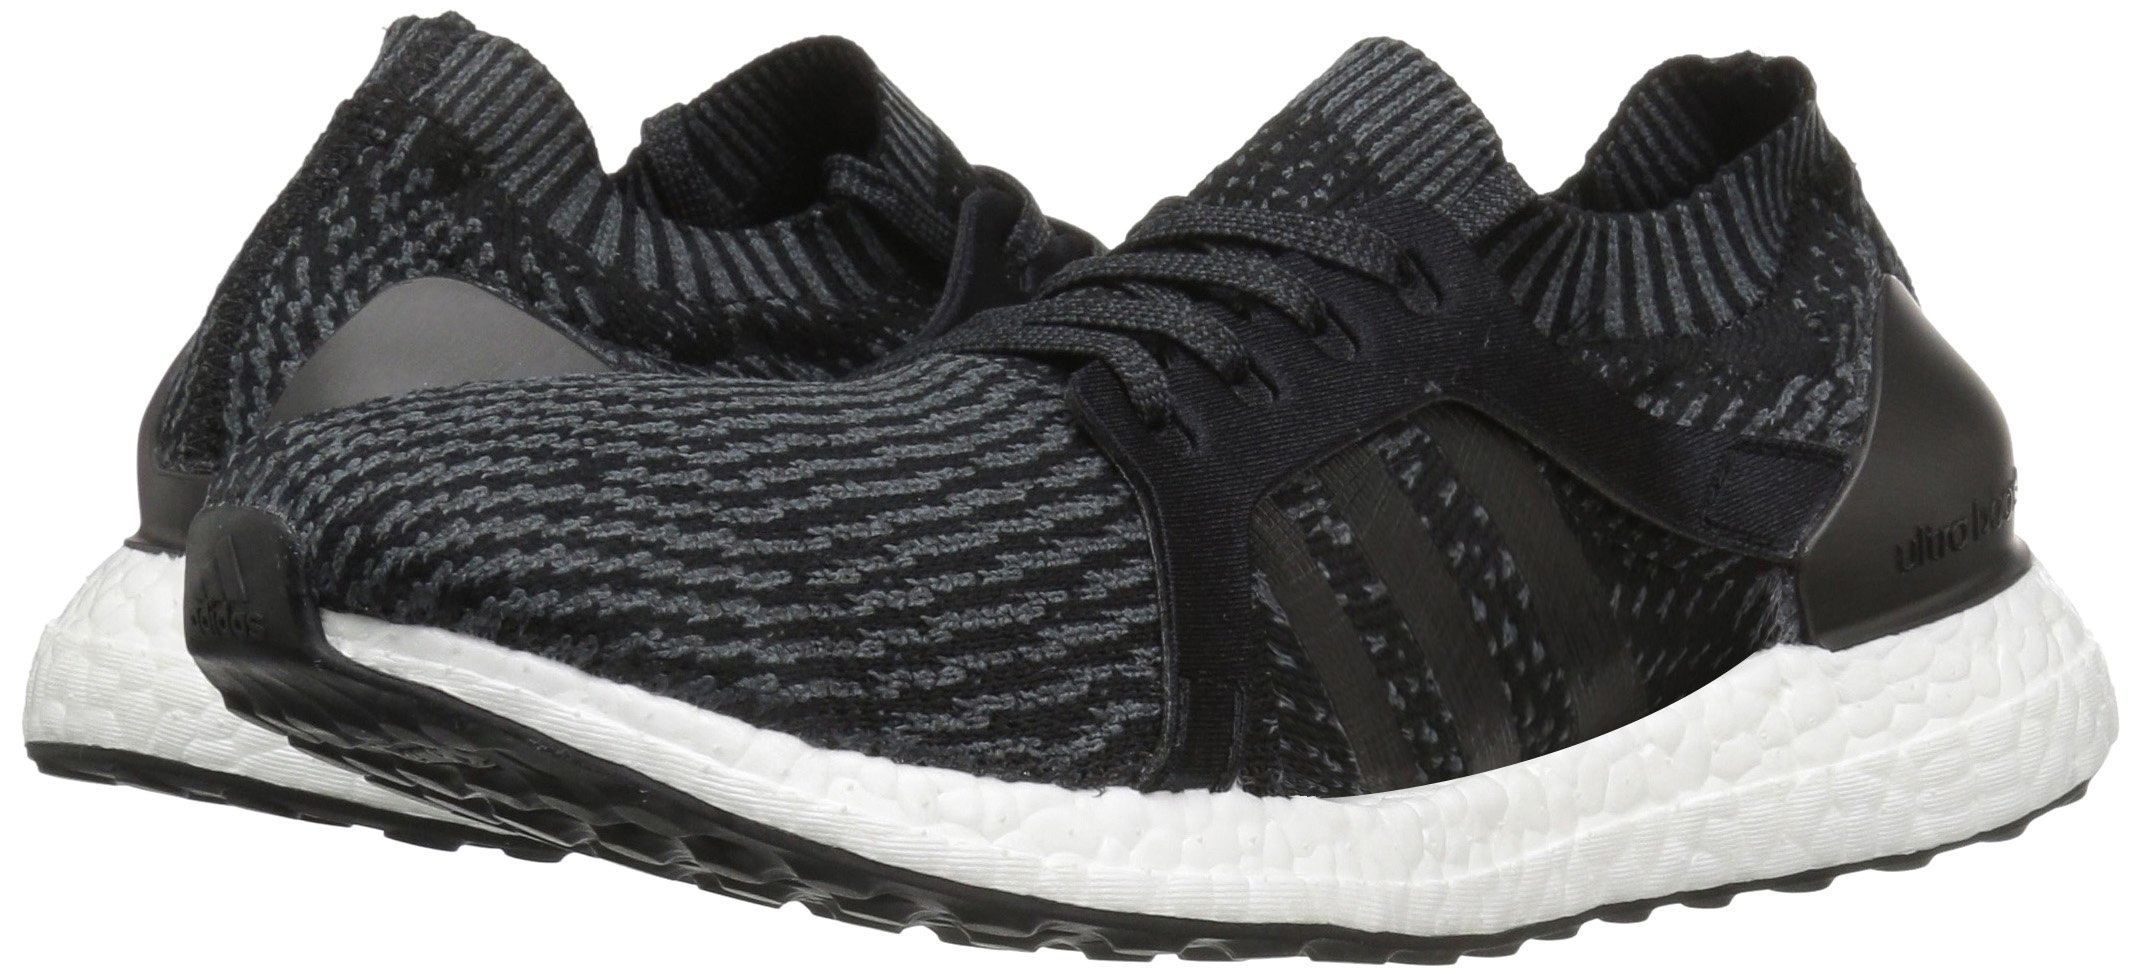 adidas performance delle donne amazzoni ultraboost x